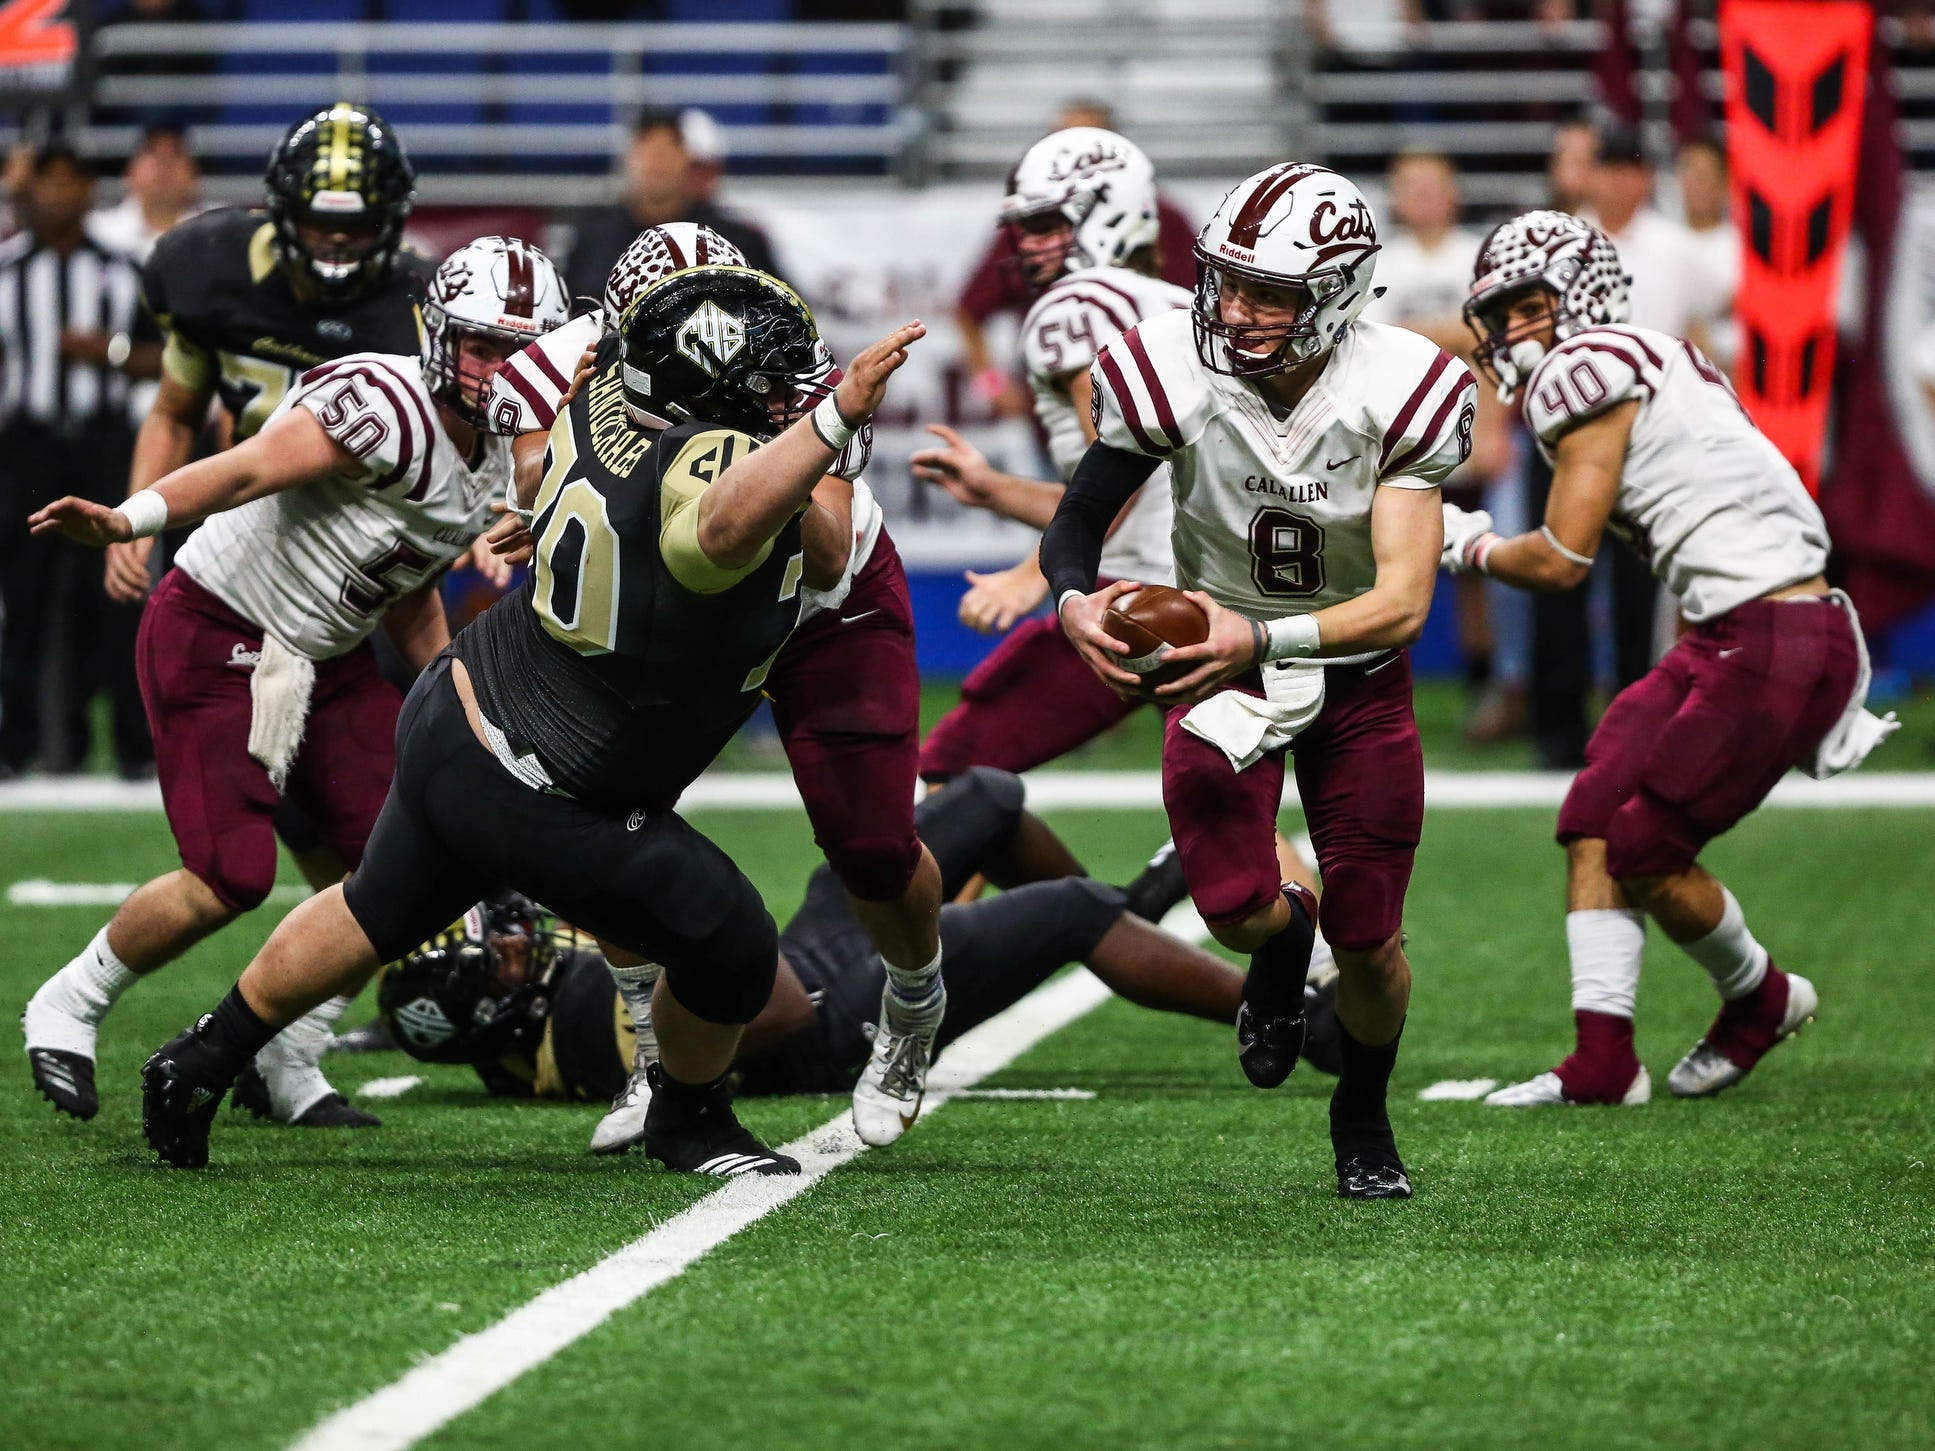 Calallen's Jarrett Garza runs the ball during Friday's game at the Alamodome.